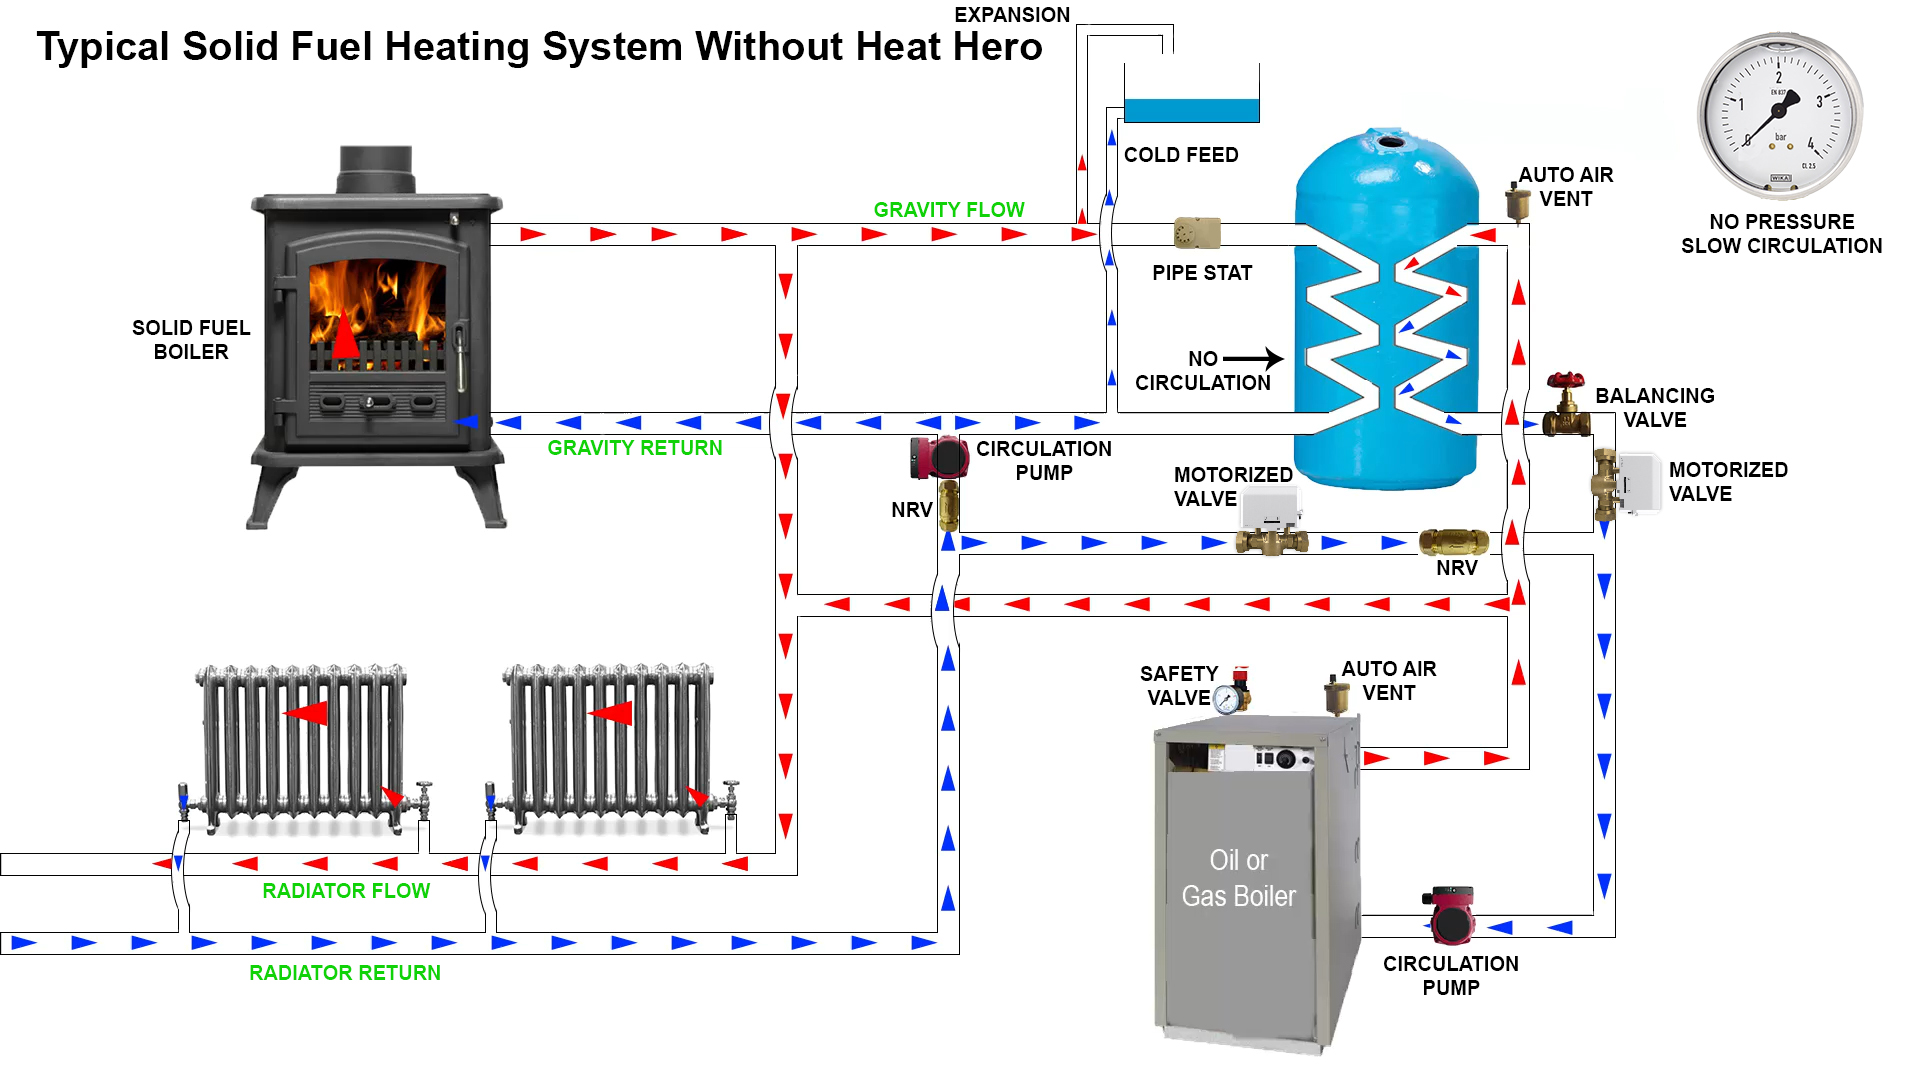 Wiring Diagram For Heating System : Heat pump wiring diagram pumps product